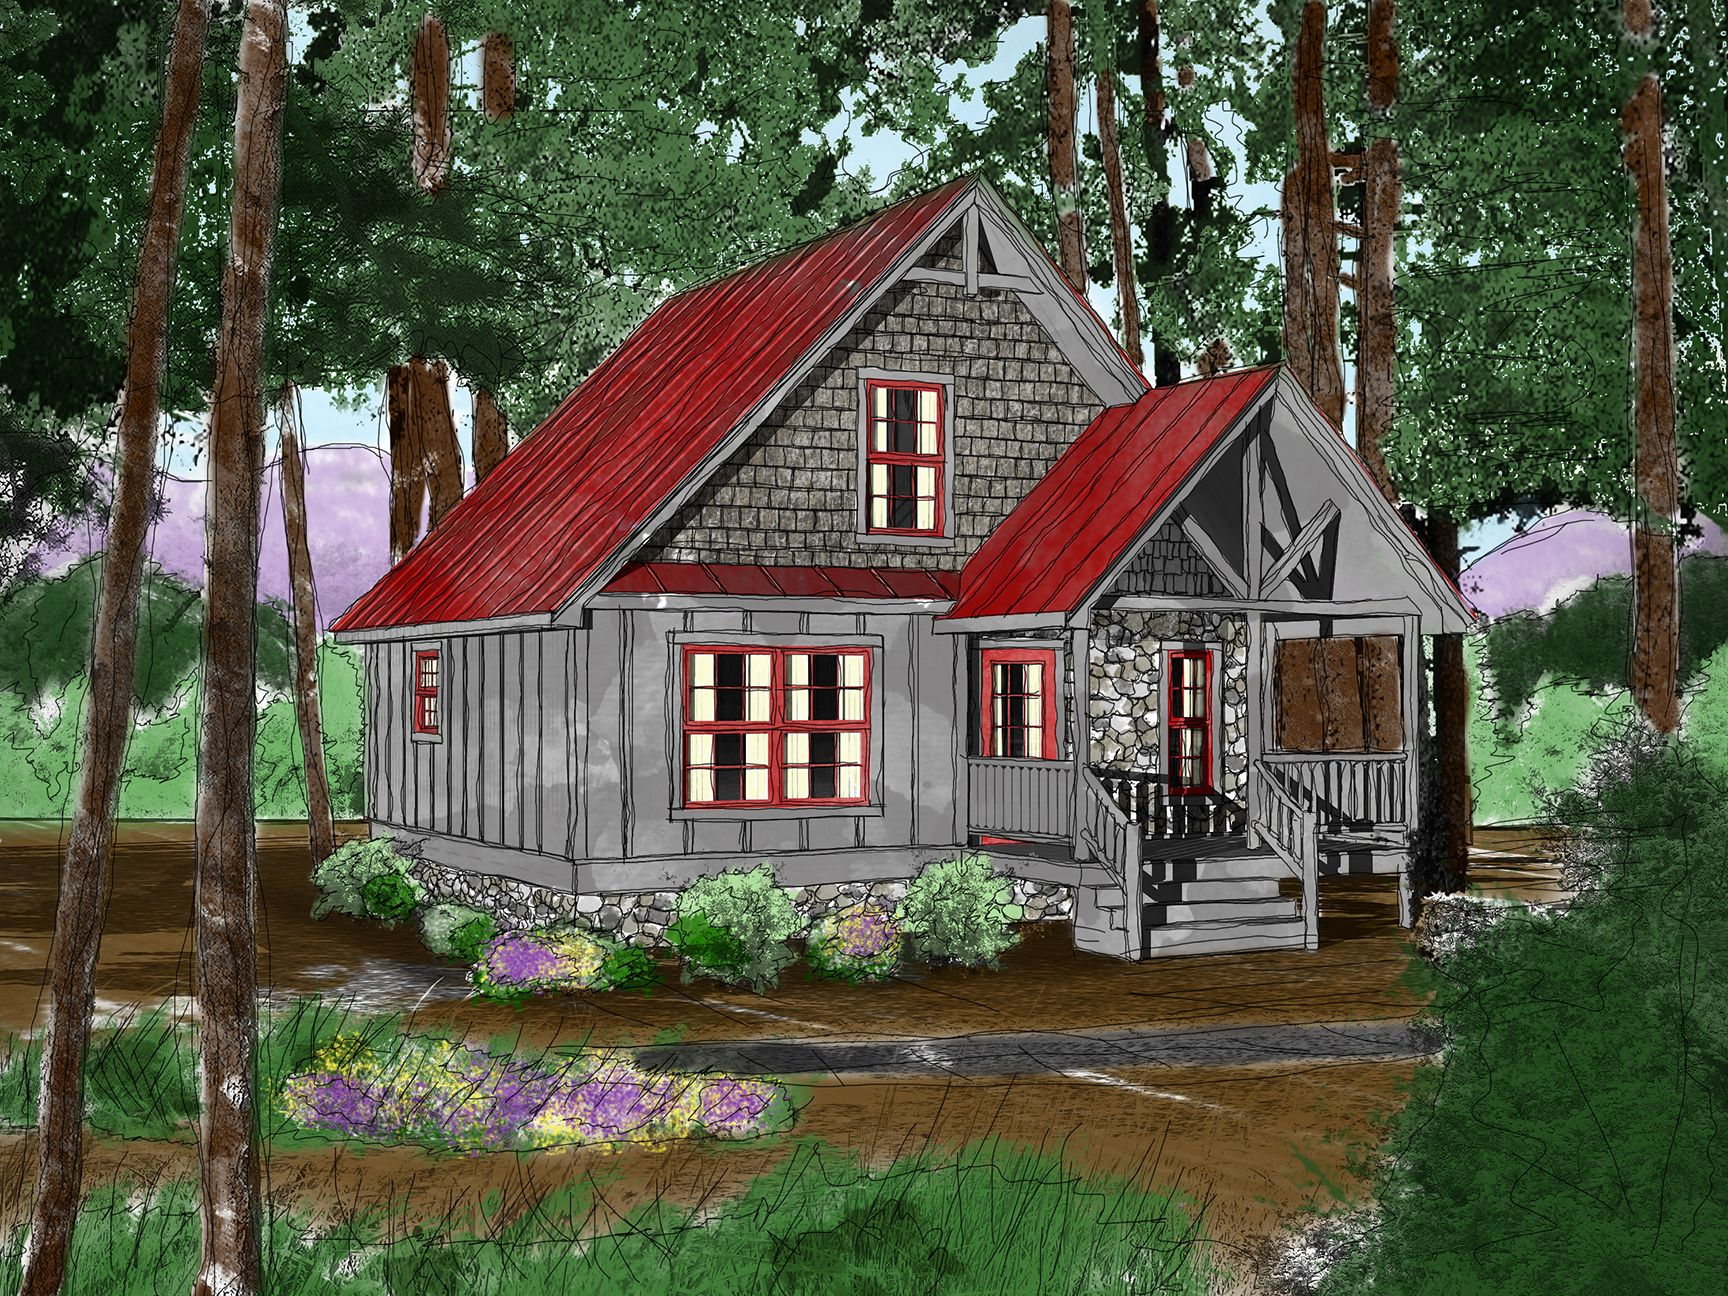 Tiny Victorian House Plans Small Cabins Tiny Houses Homes: Cool 800 Sq Ft Cozy Cabin Tiny Home By Mountain